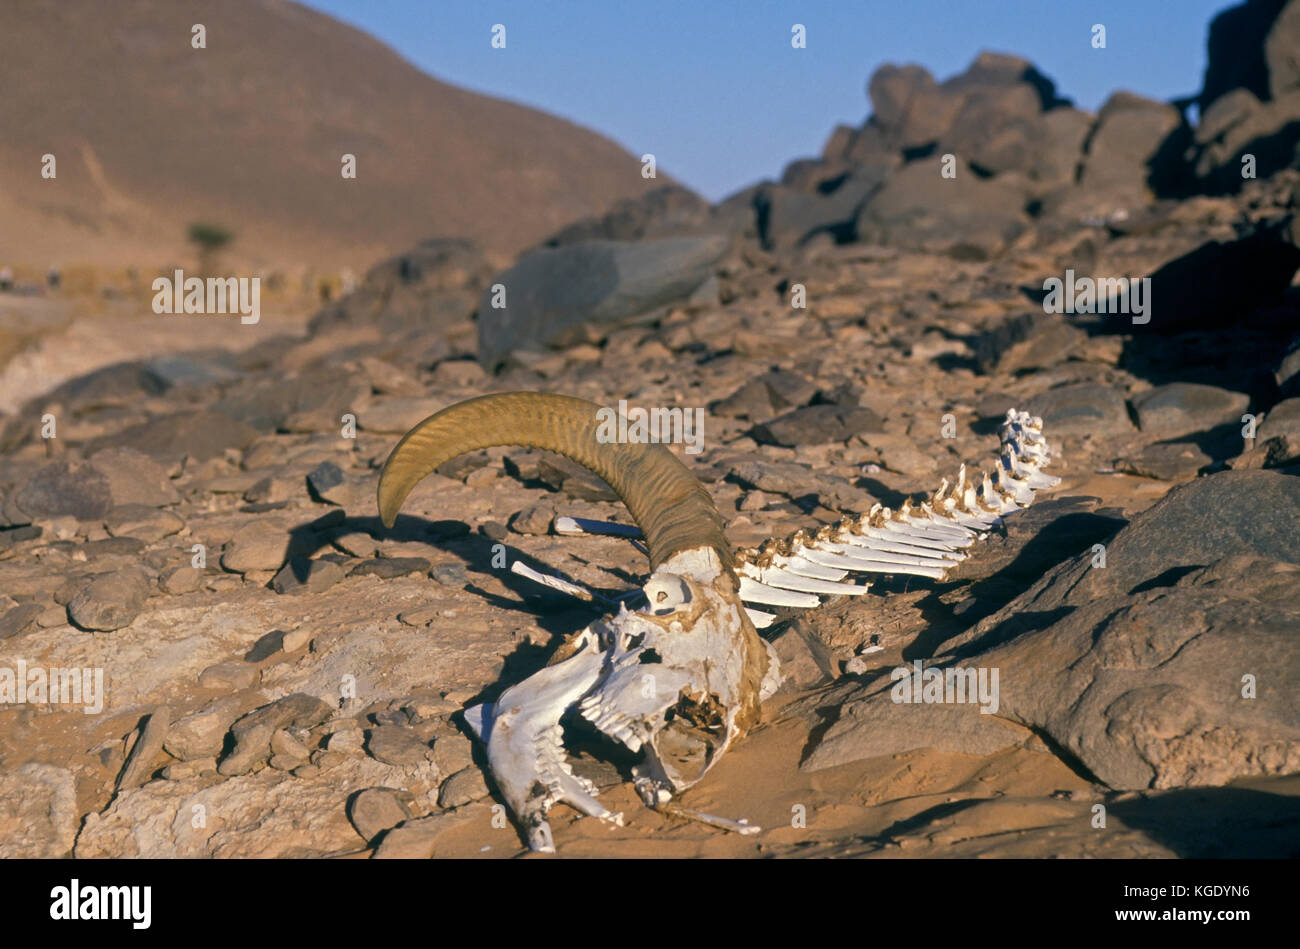 Wild goat, Capra aegagrus. Partial skeleton of dead animal in the desert. Grand Bara Desert, South Djibouti - Stock Image